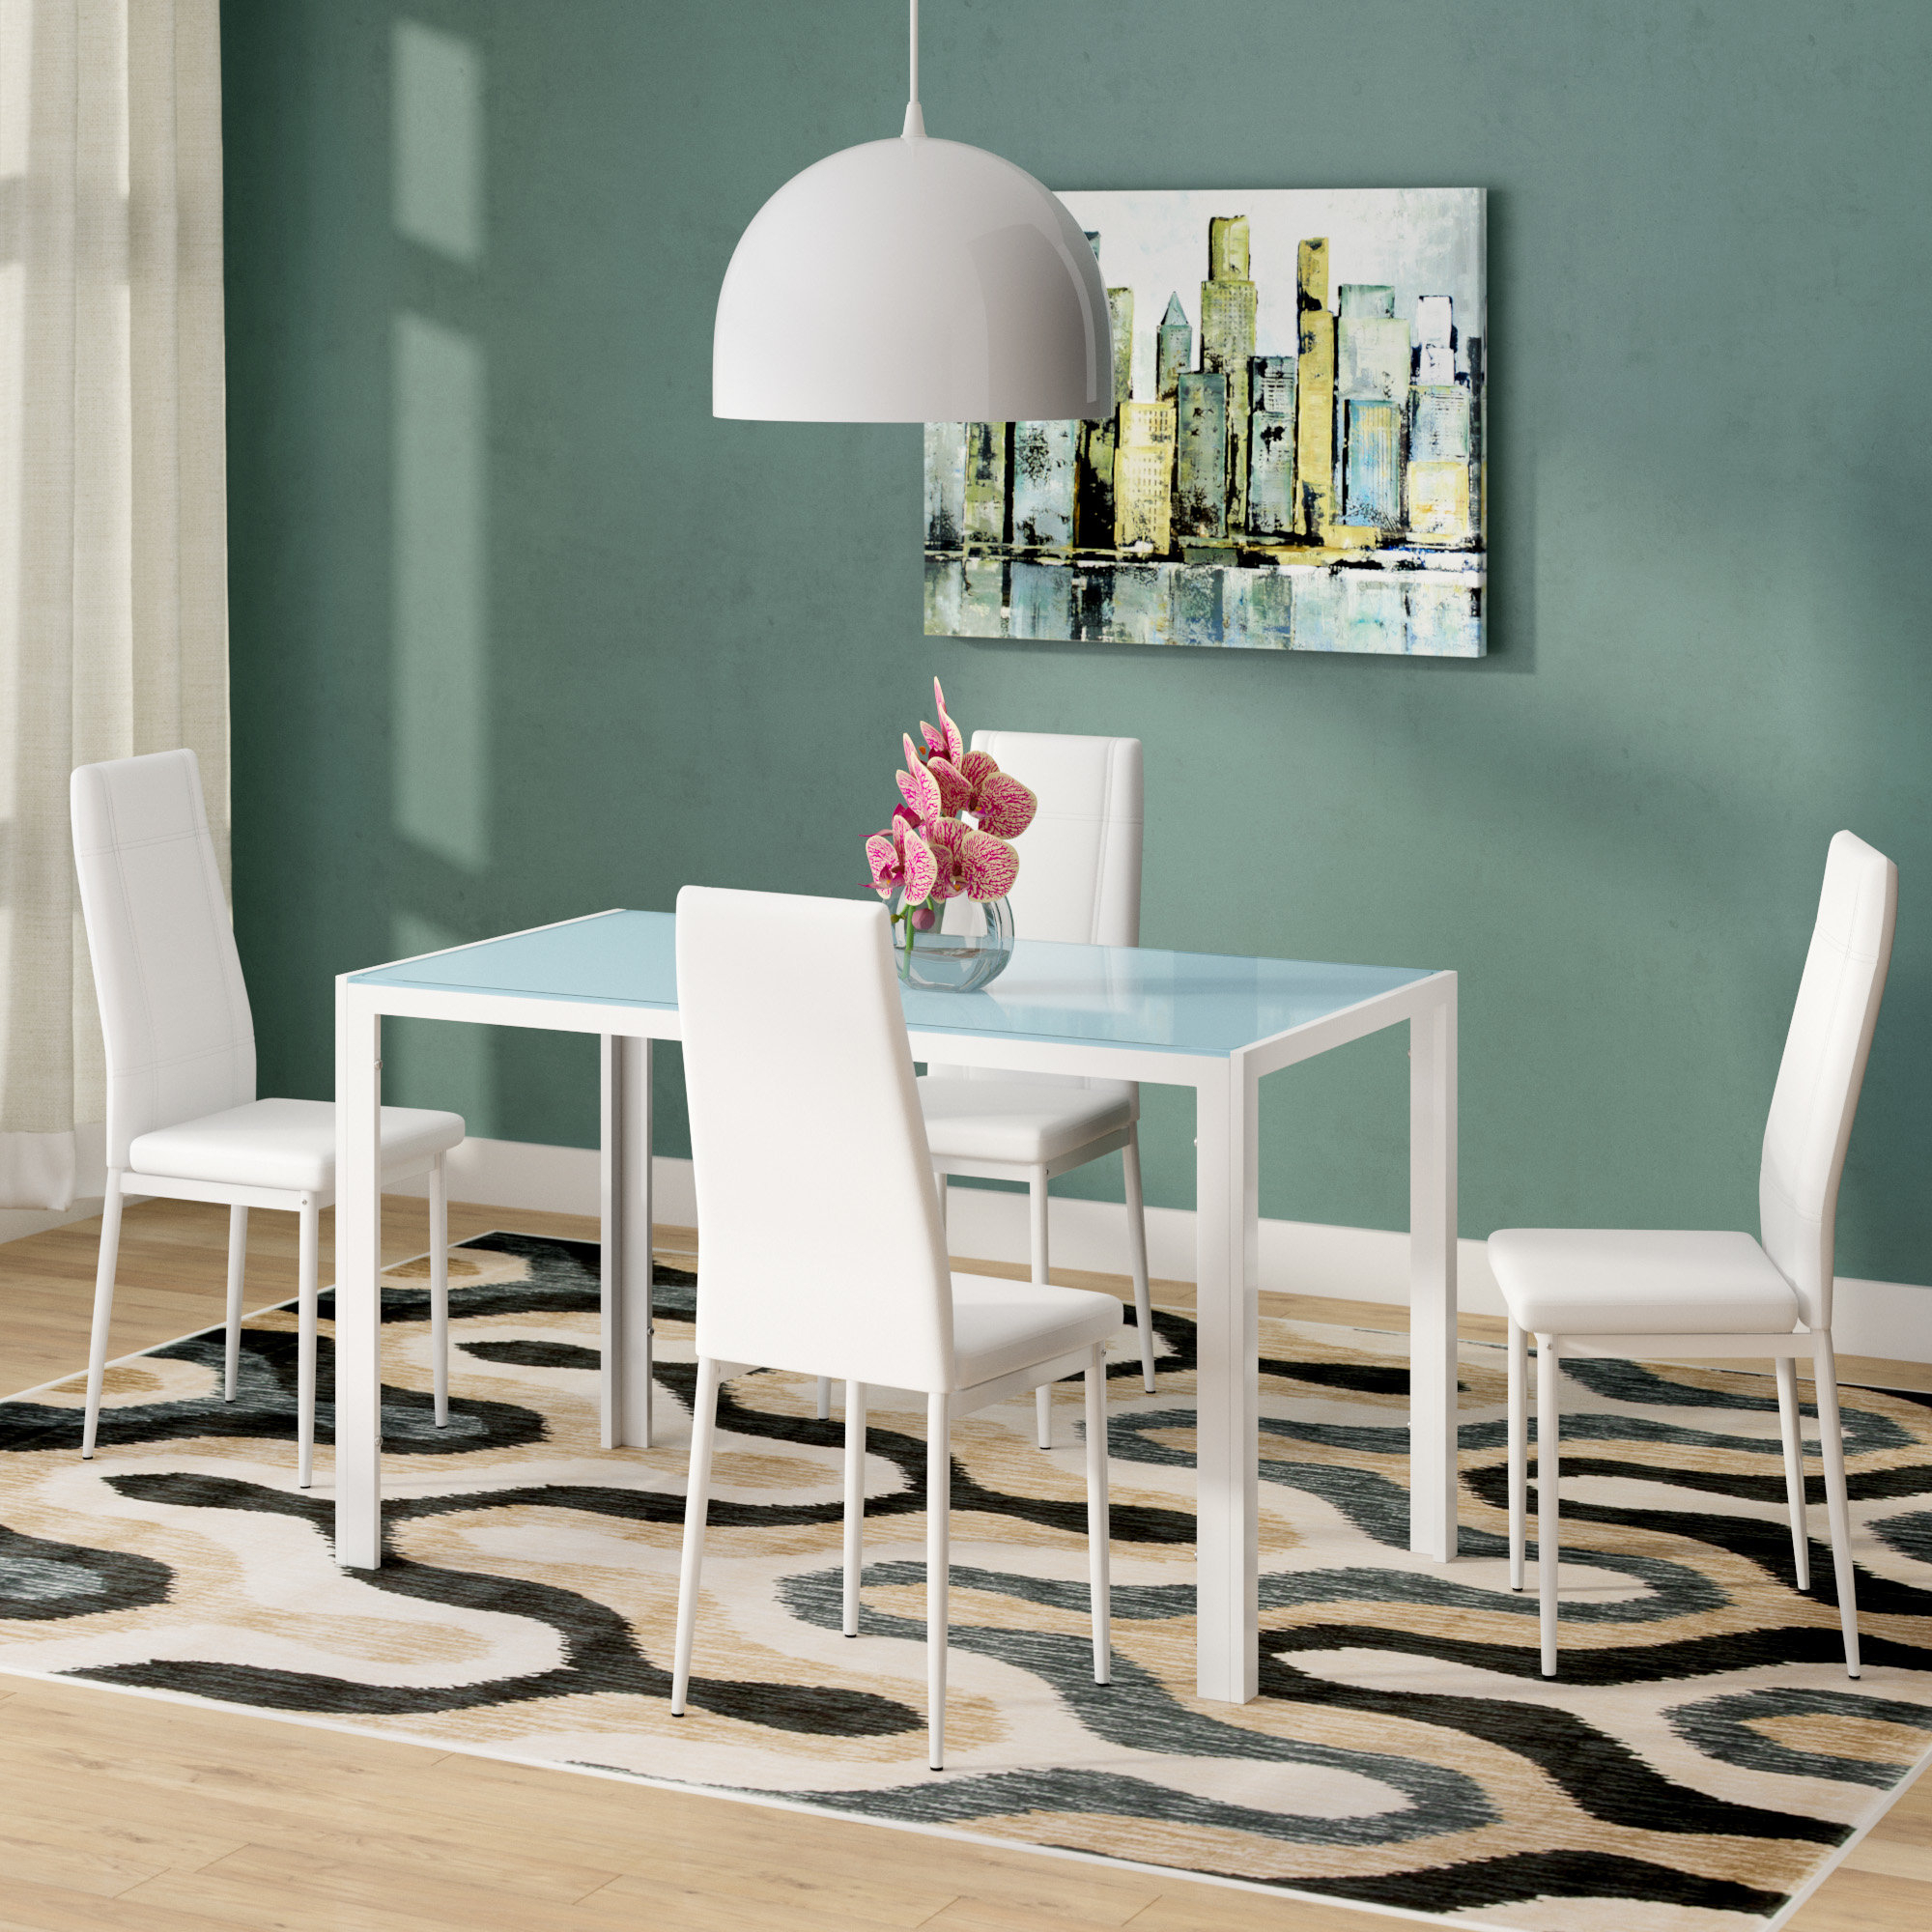 Travon 5 Piece Dining Sets With Regard To Latest Dimattia 5 Piece Dining Set (Gallery 5 of 20)